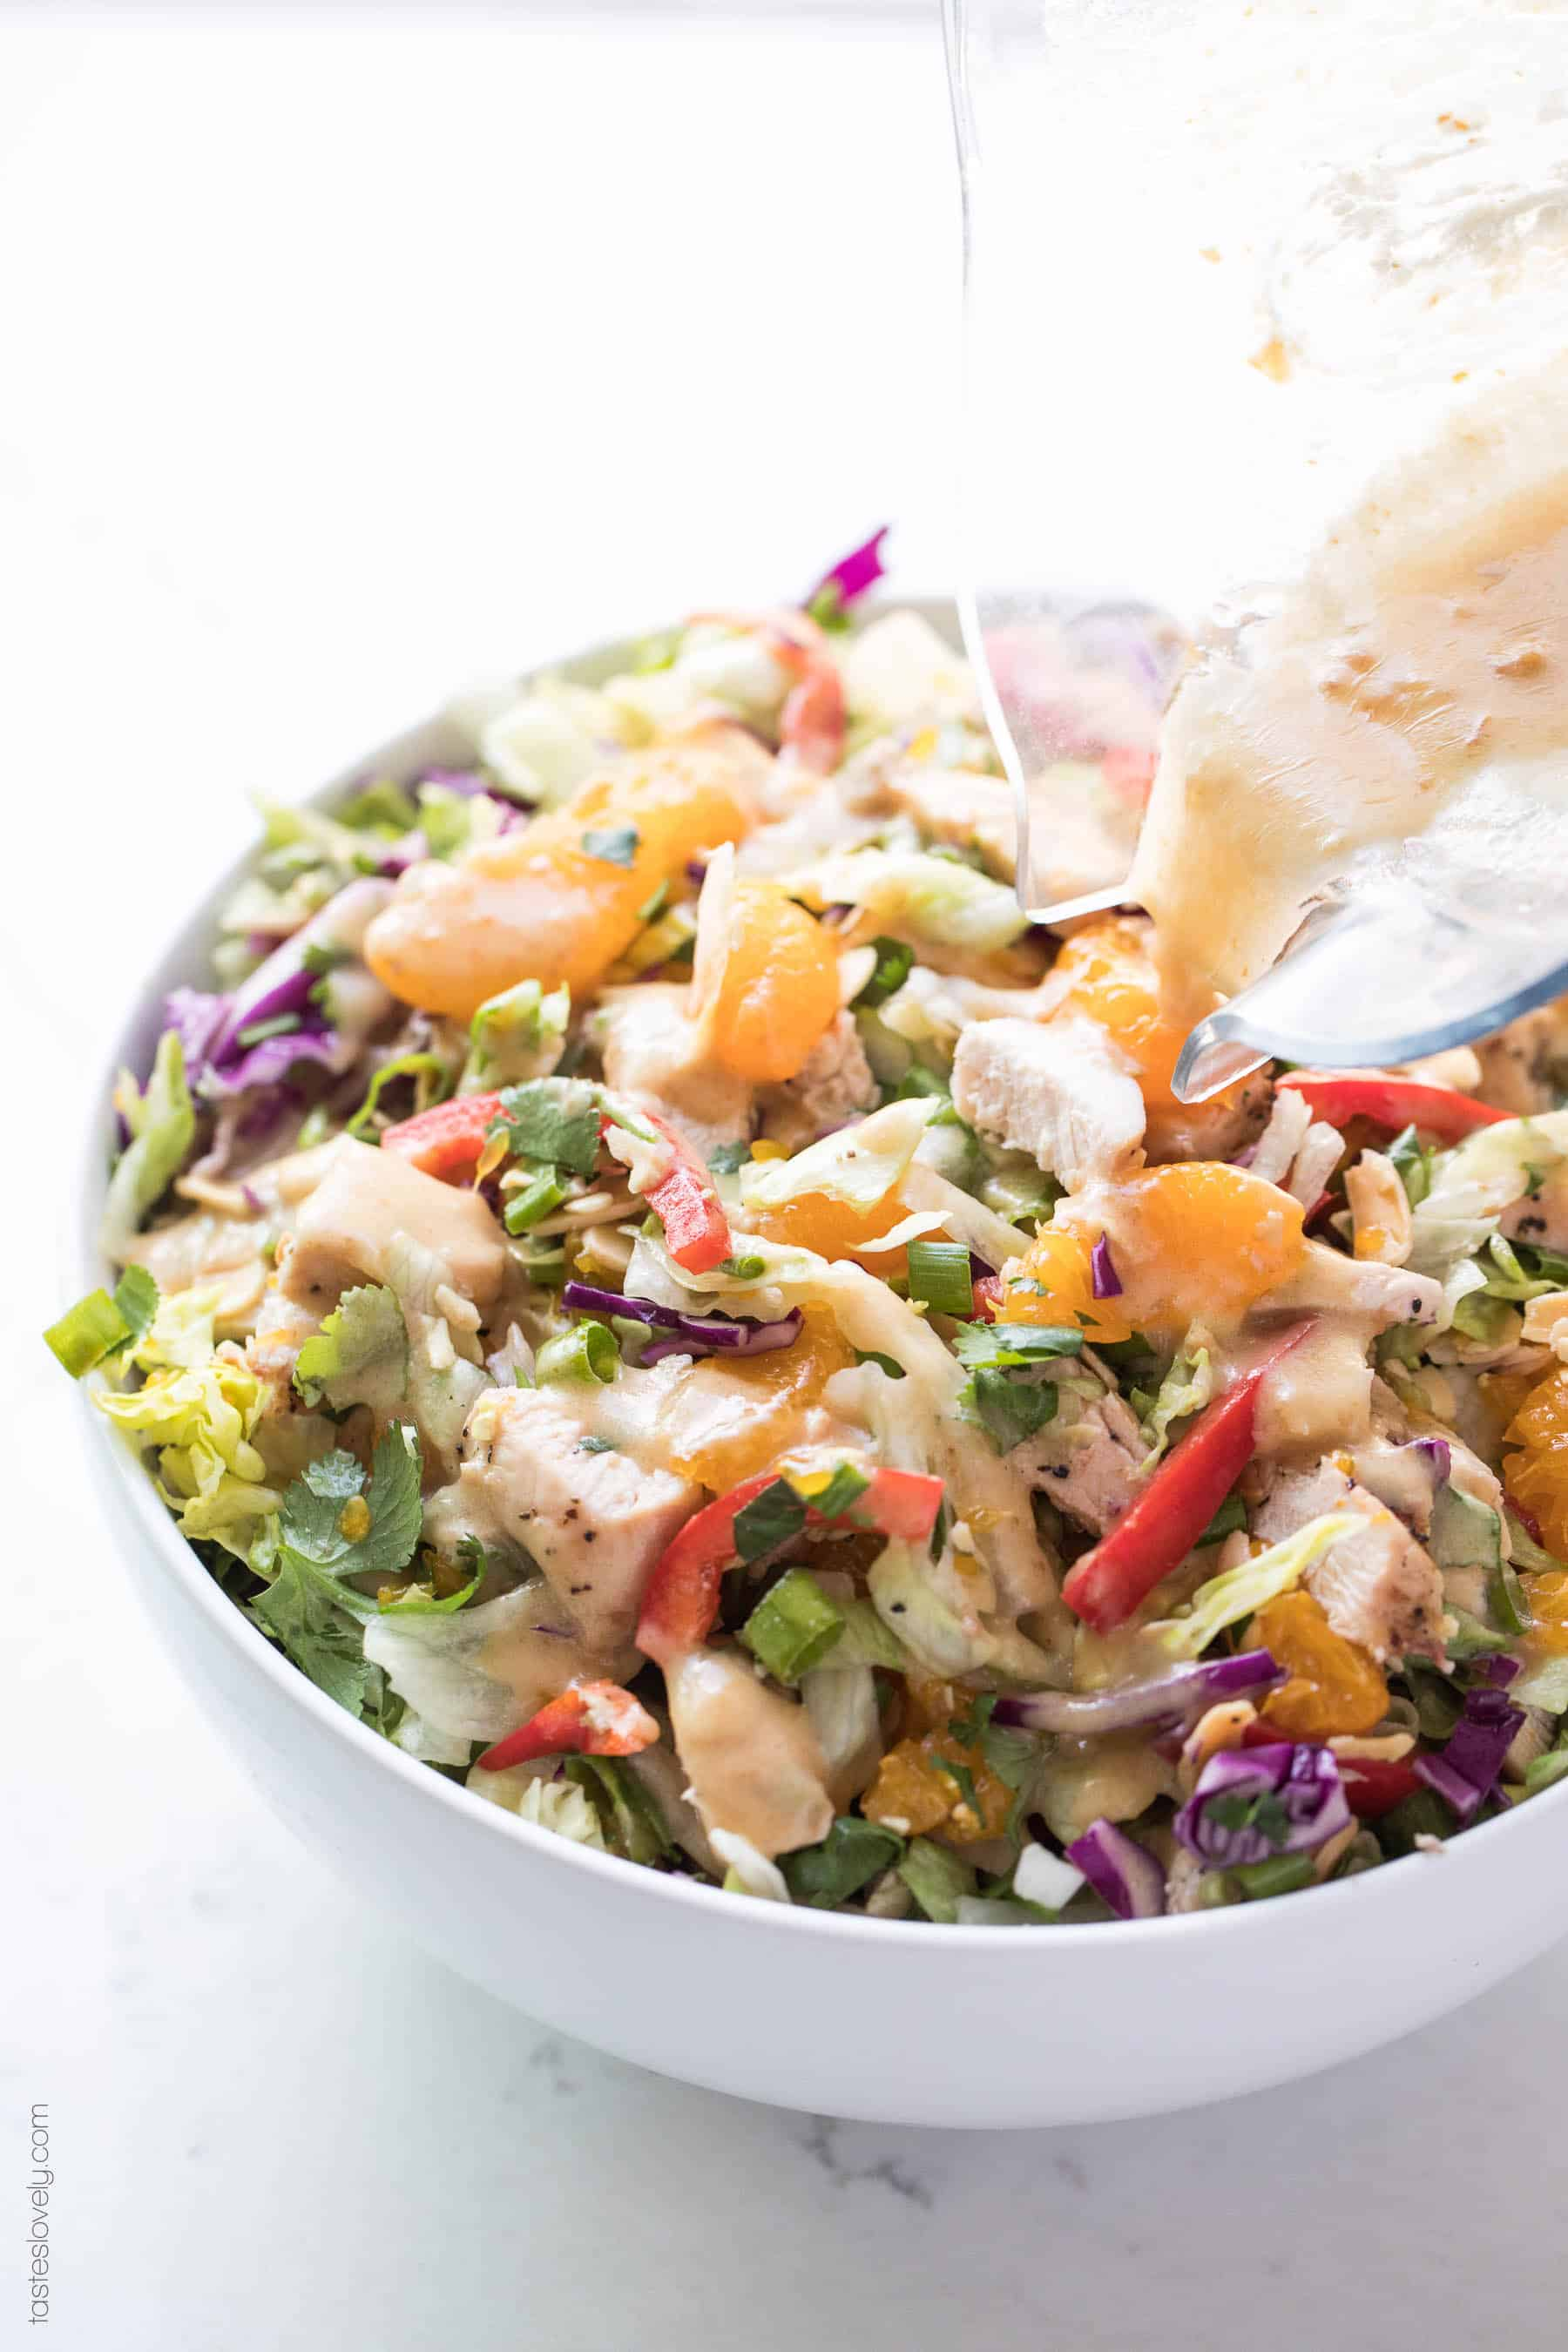 Paleo + Whole30 Chinese Chicken Salad Recipe with a homemade salad dressing. Delicious and healthy 30 minute asian chicken salad recipe! #paleo #whole30 #keto #glutenfree #grainfree #dairyfree #sugarfree #lowcarb #cleaneating #realfood